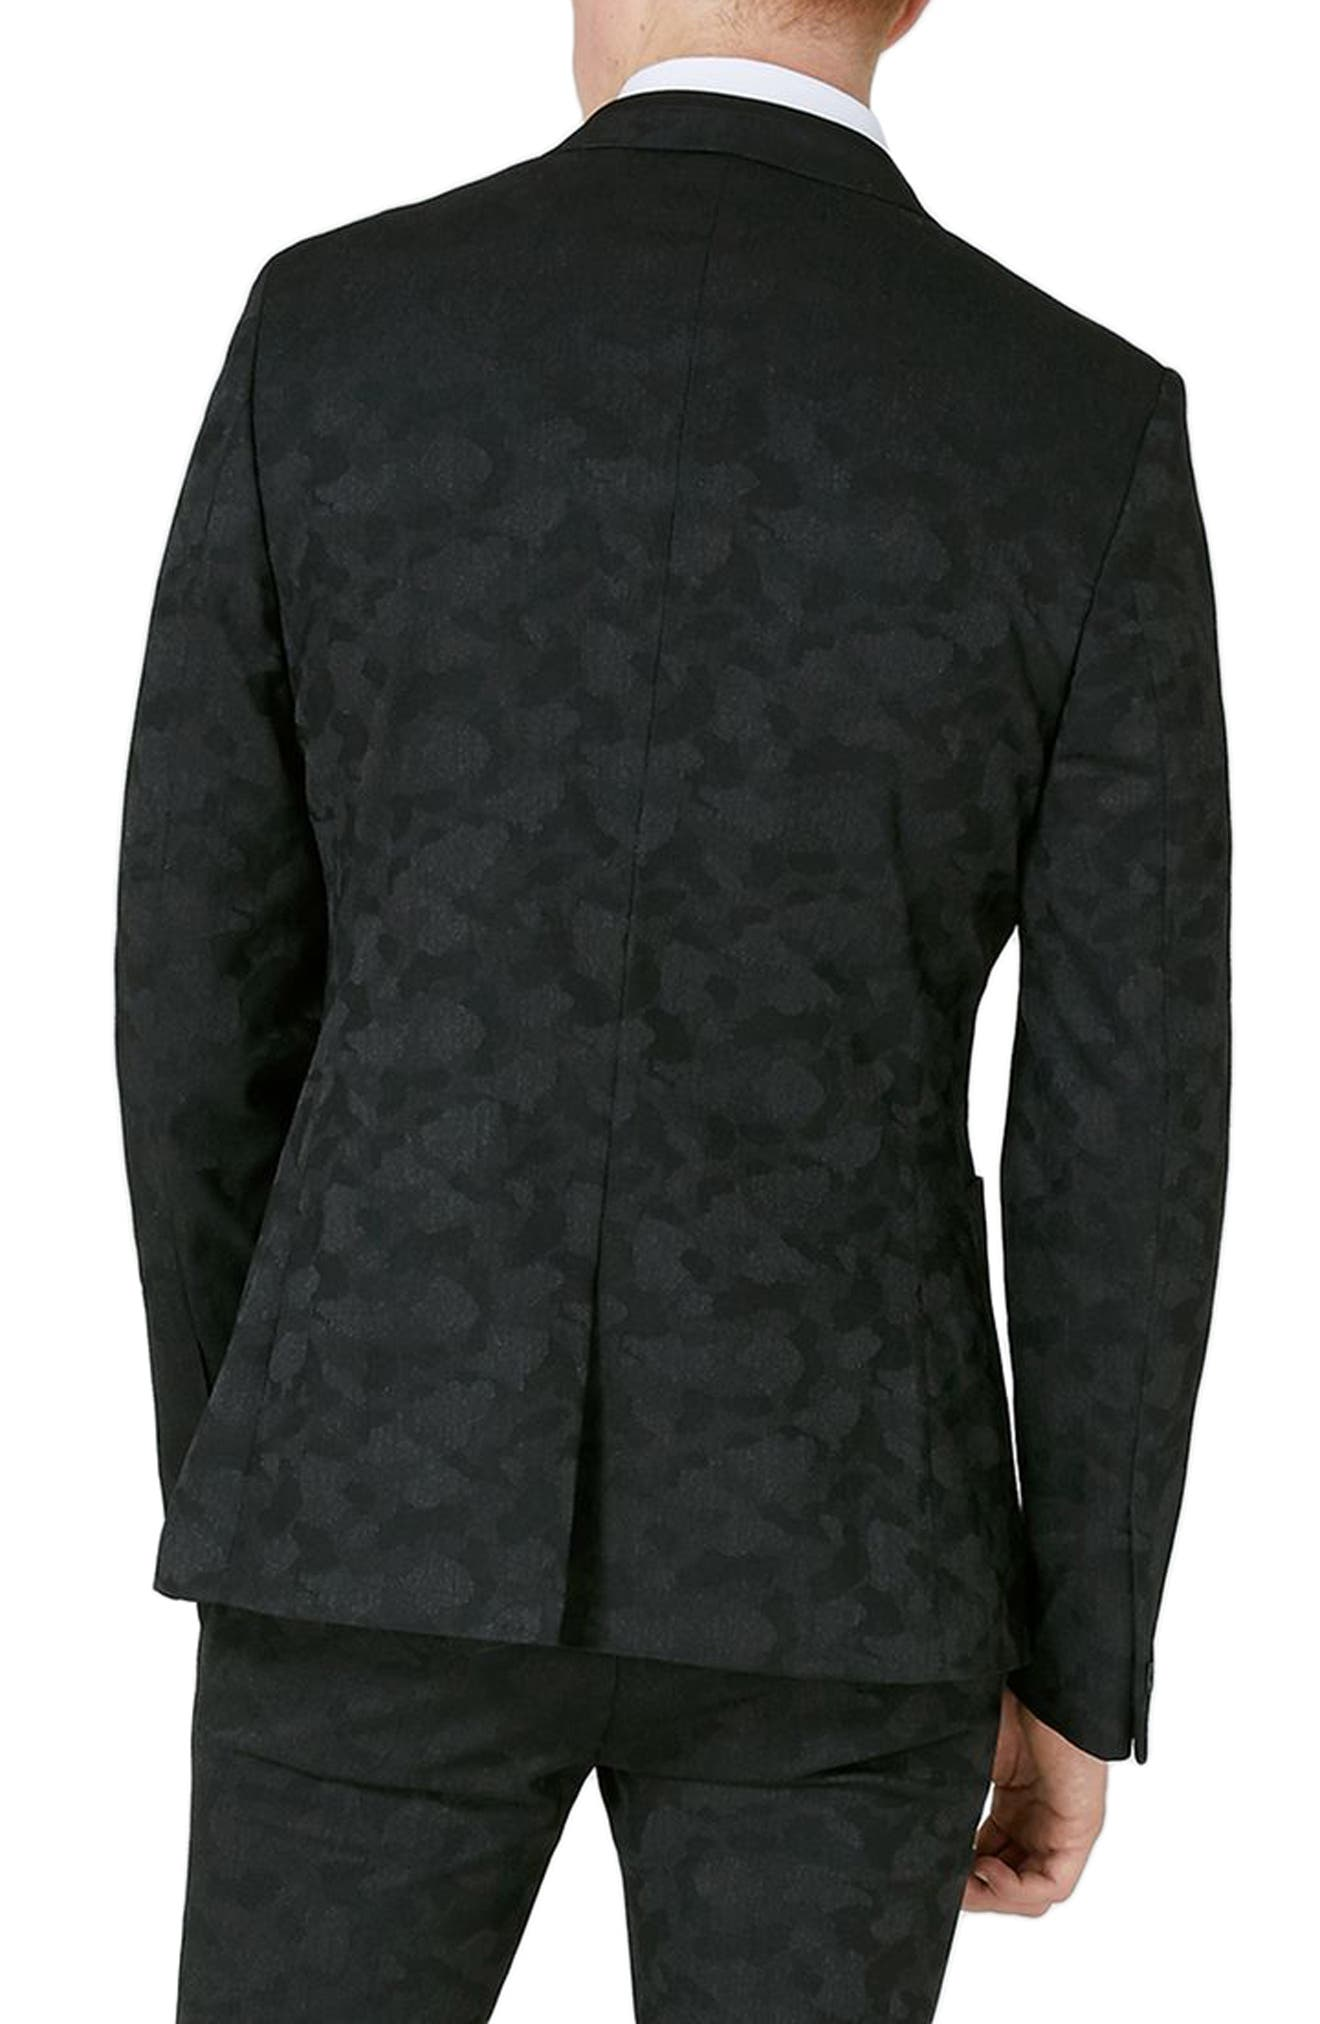 Shadow Camo Ultra Skinny Fit Suit Jacket,                             Alternate thumbnail 2, color,                             020